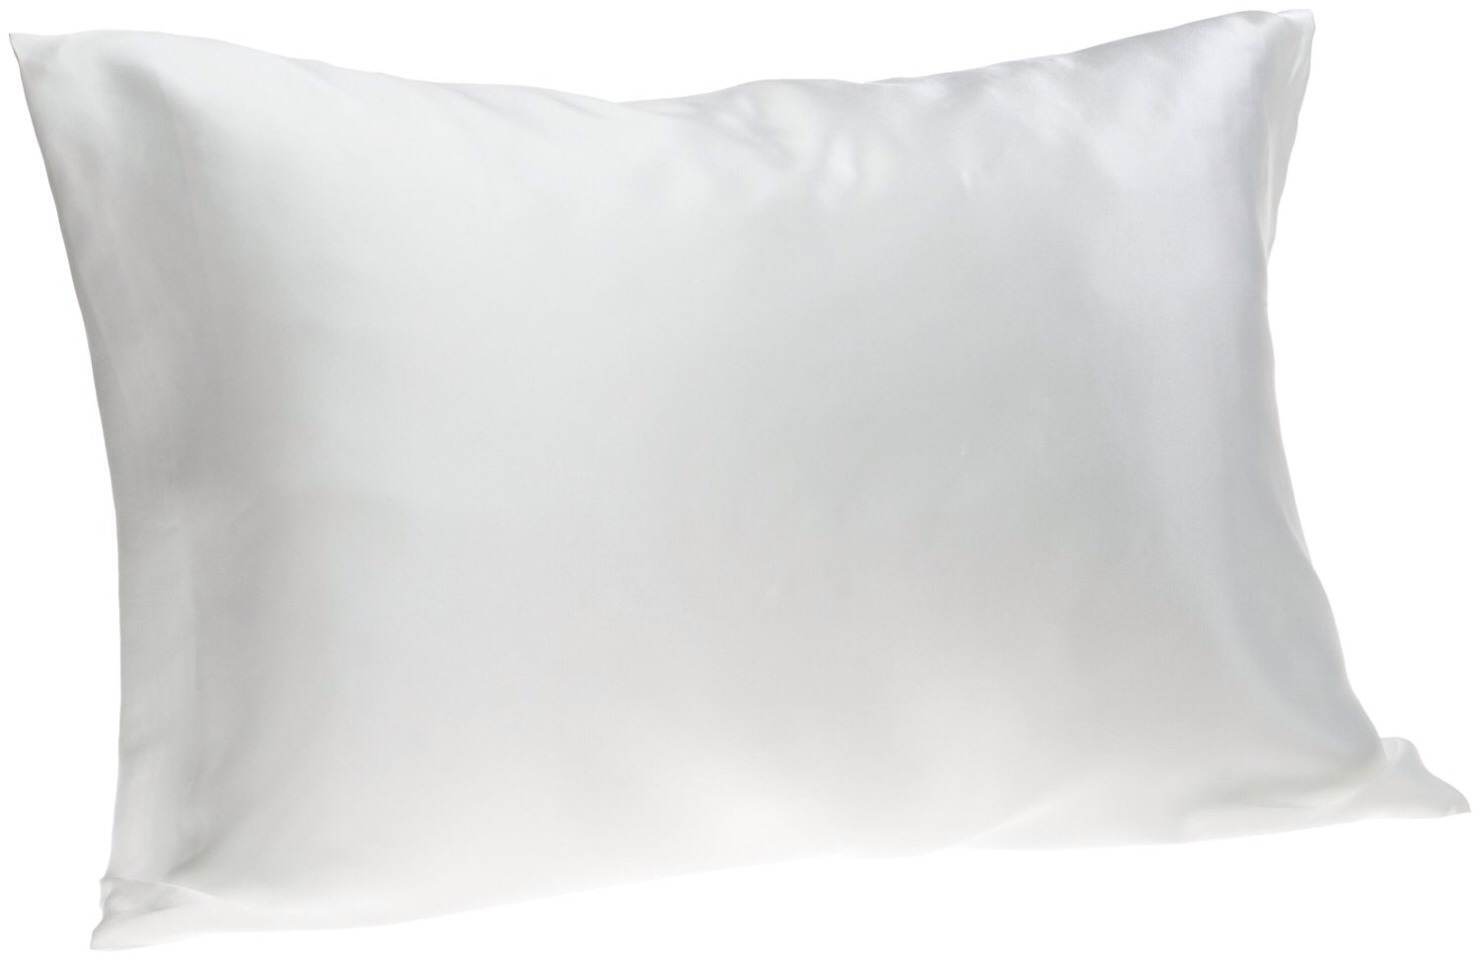 Sleep on a silk or satin pillowcase. Using fleece pillowcases posses the same results as towel drying, it takes out the natural shine and makes hair frizzy.